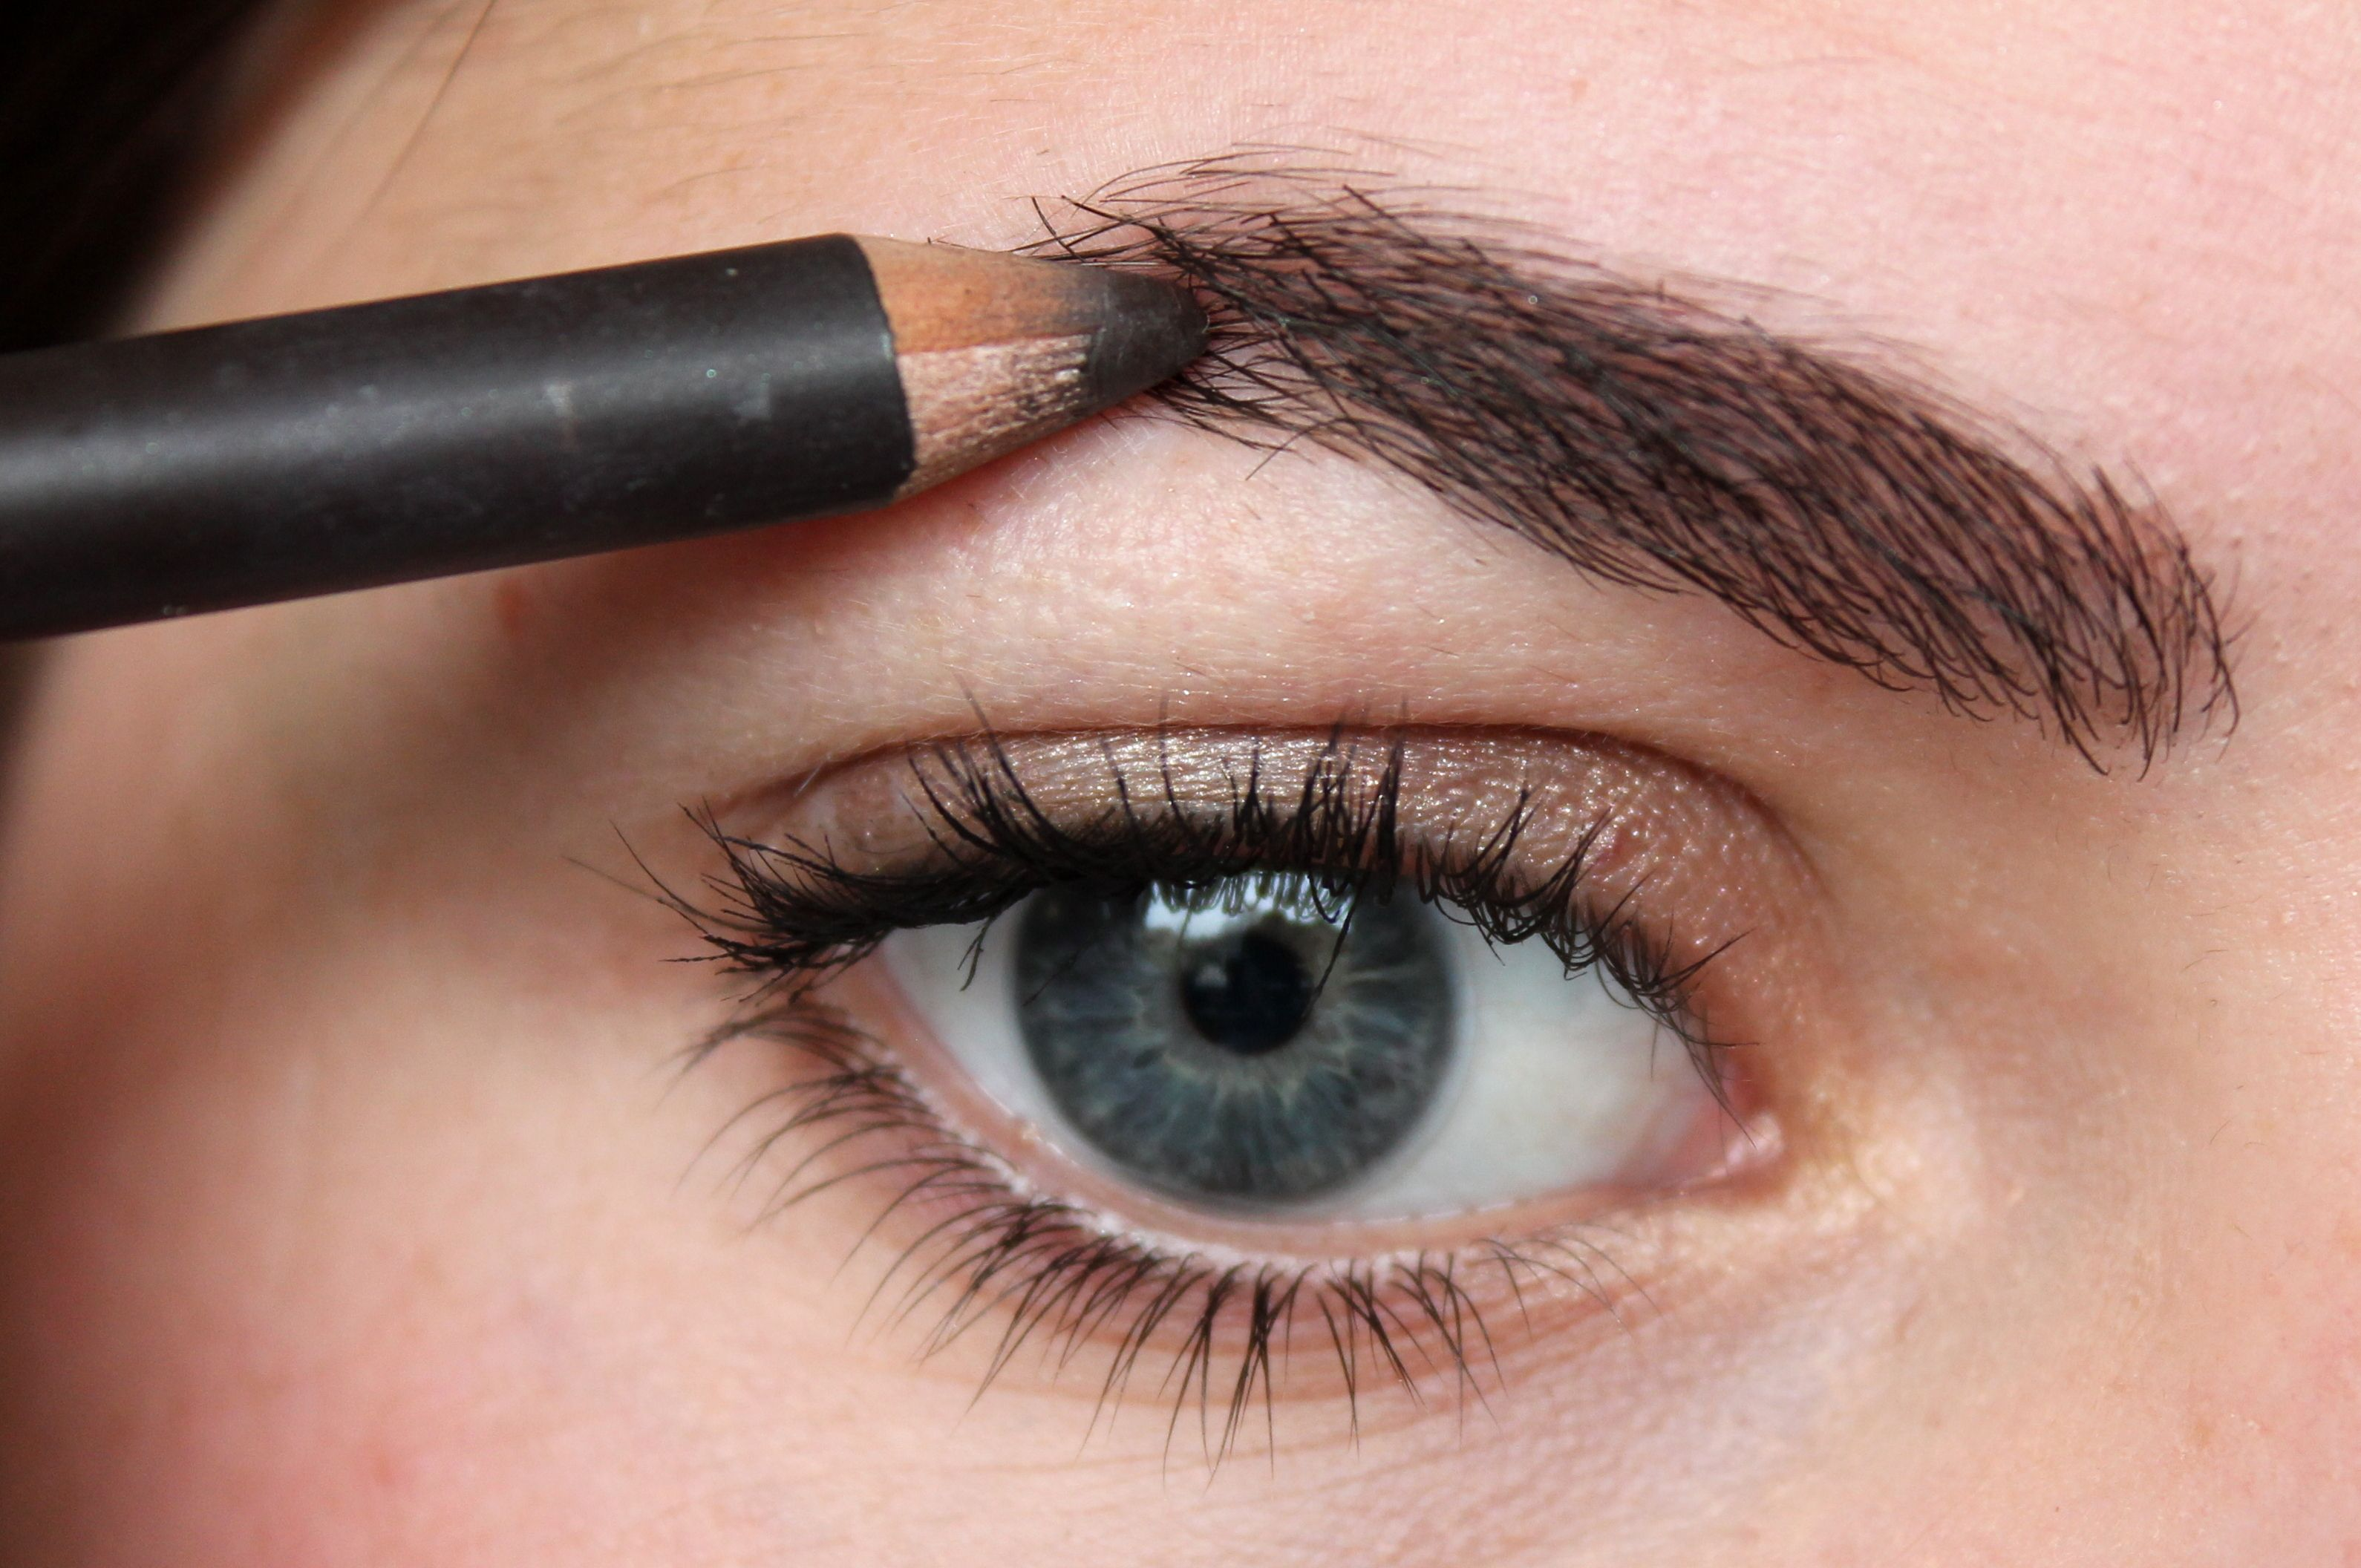 This is something most women already do: pluck the hairs around the brows. When I say around, I mean AROUND! Do not remove (parts of) your actual brows http://www.perfecteyebrows.net/